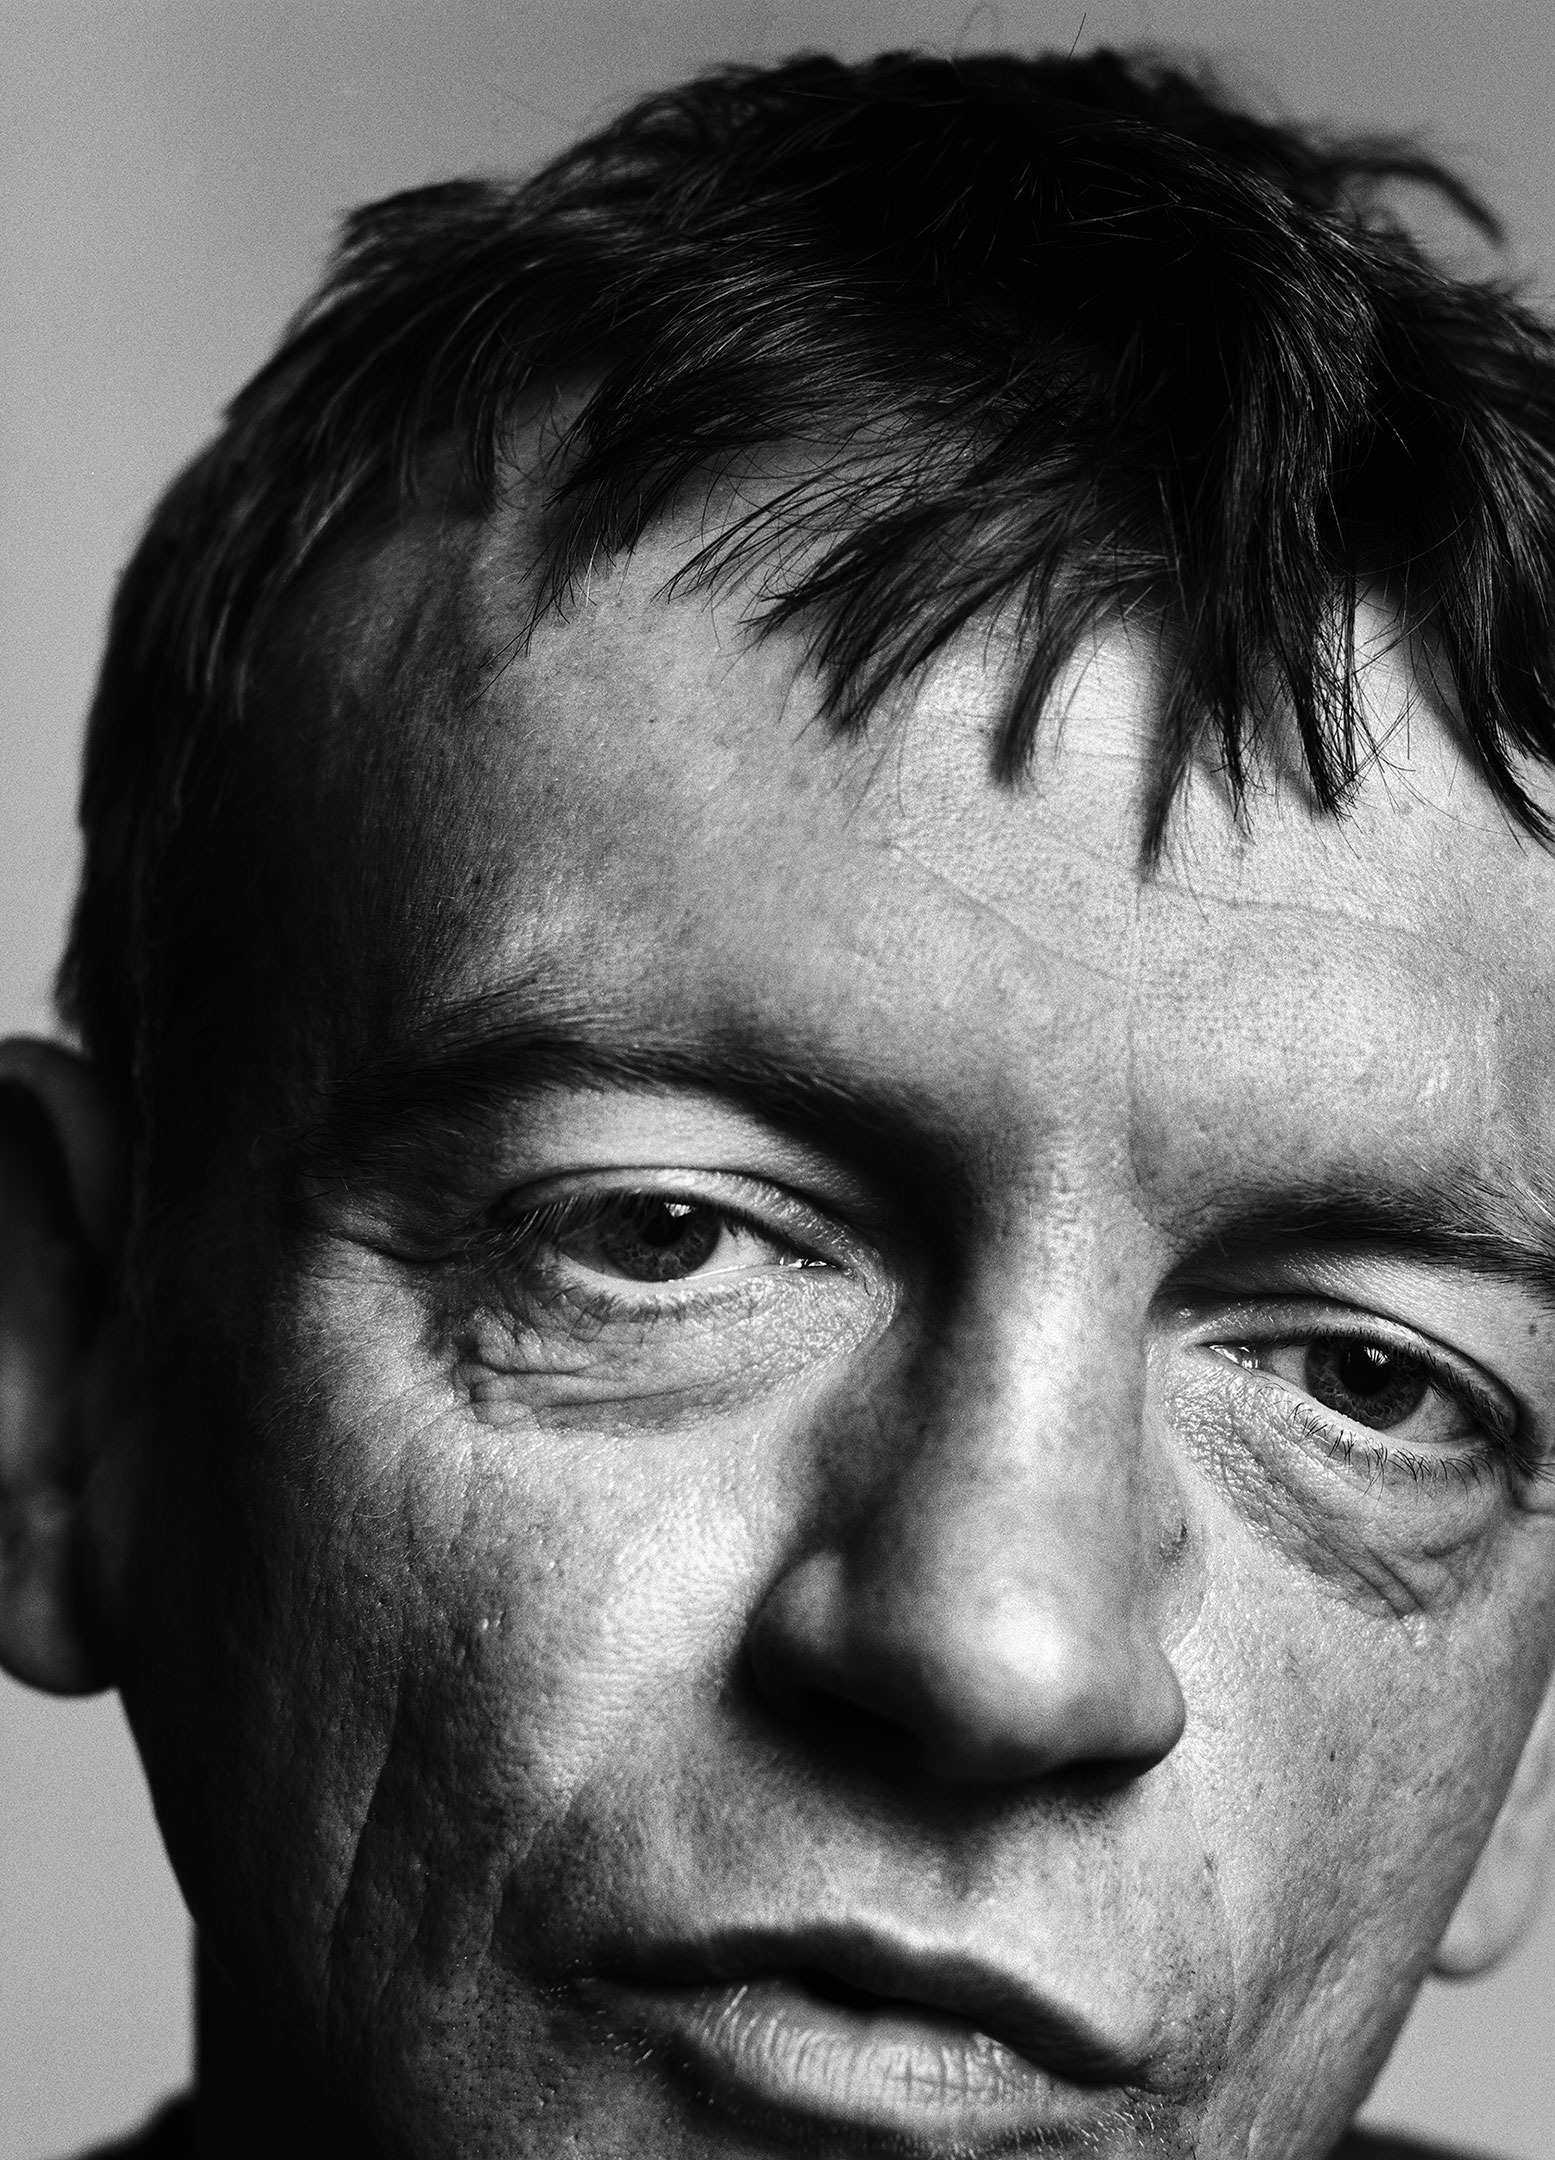 Mark E. Smith for GQ Magazine, 1996